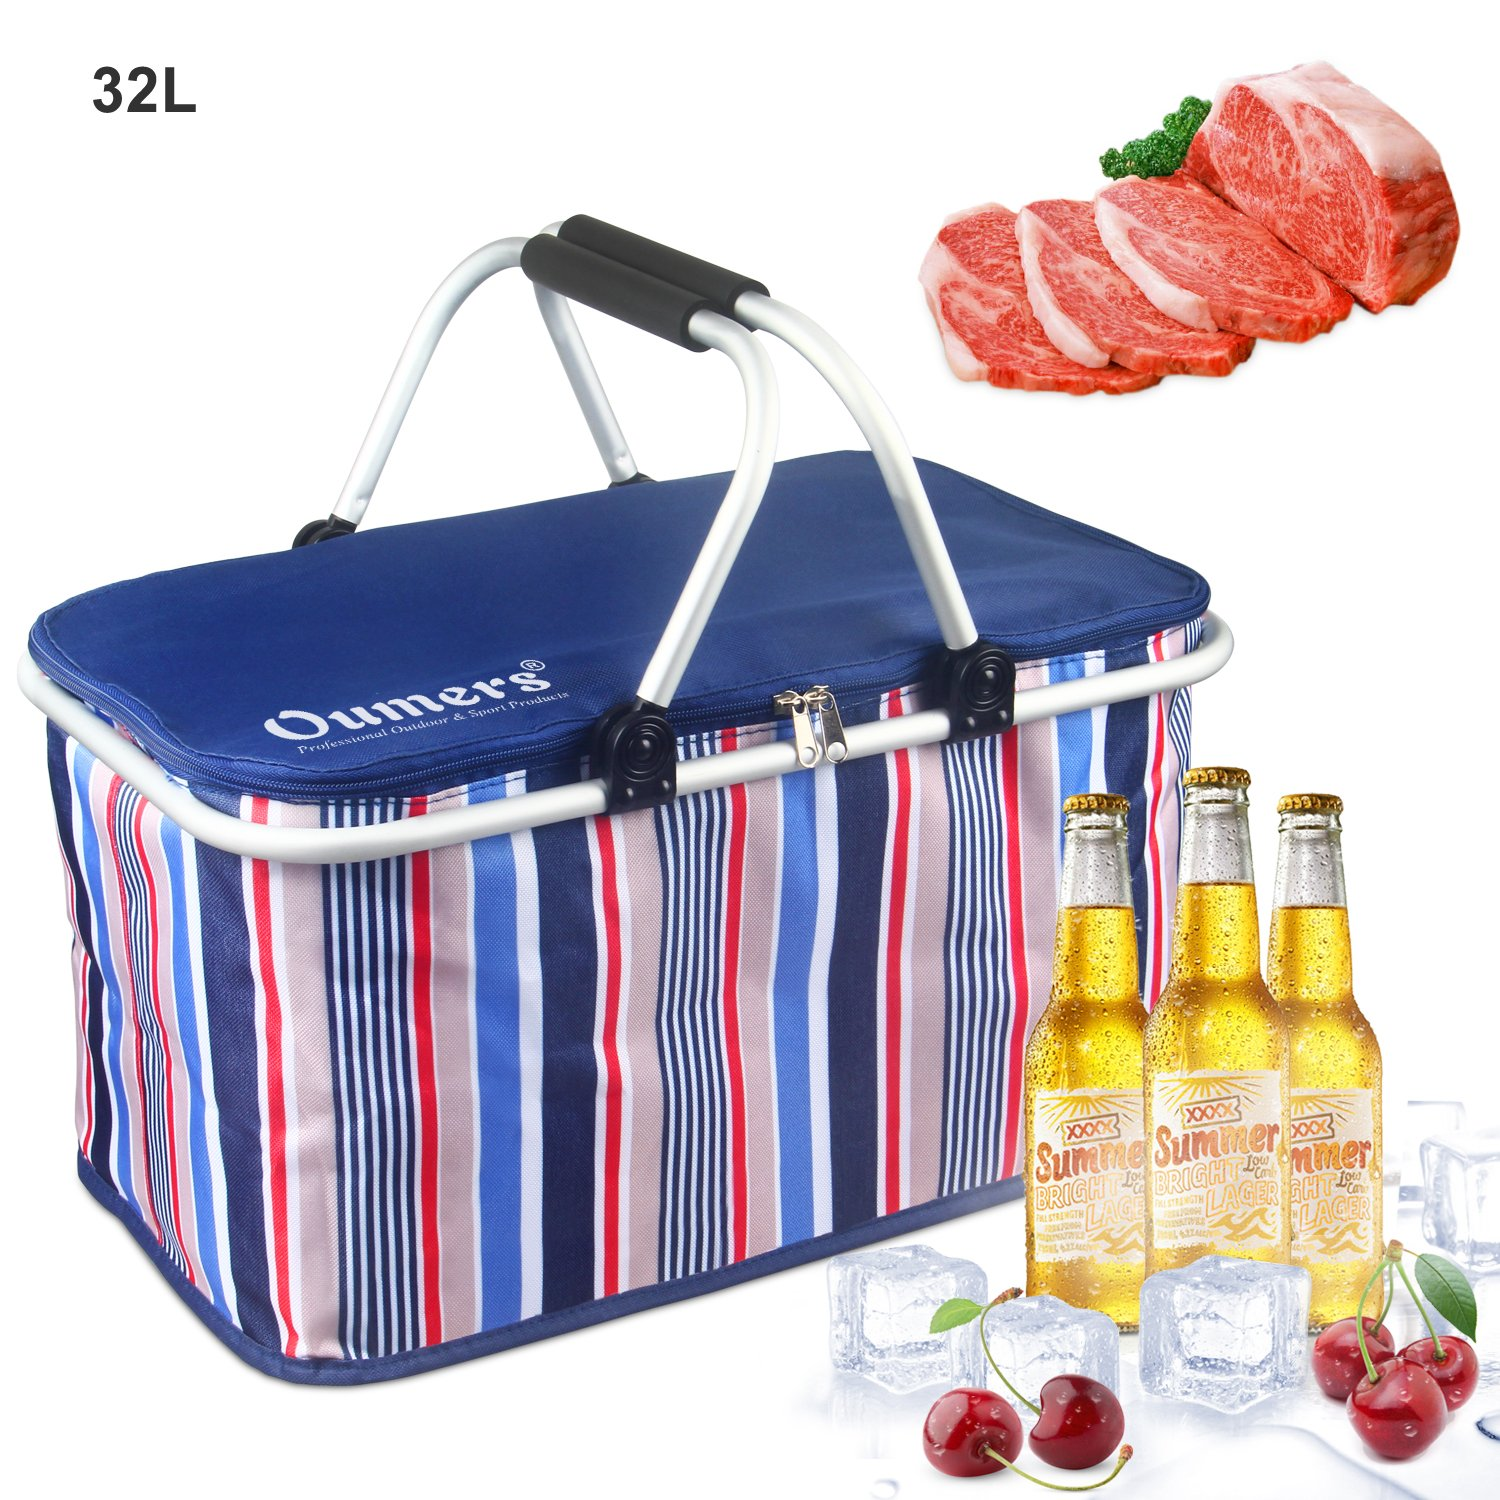 Picnic Caddy Outdoor Basket Folding Portable Large Waterproof ...